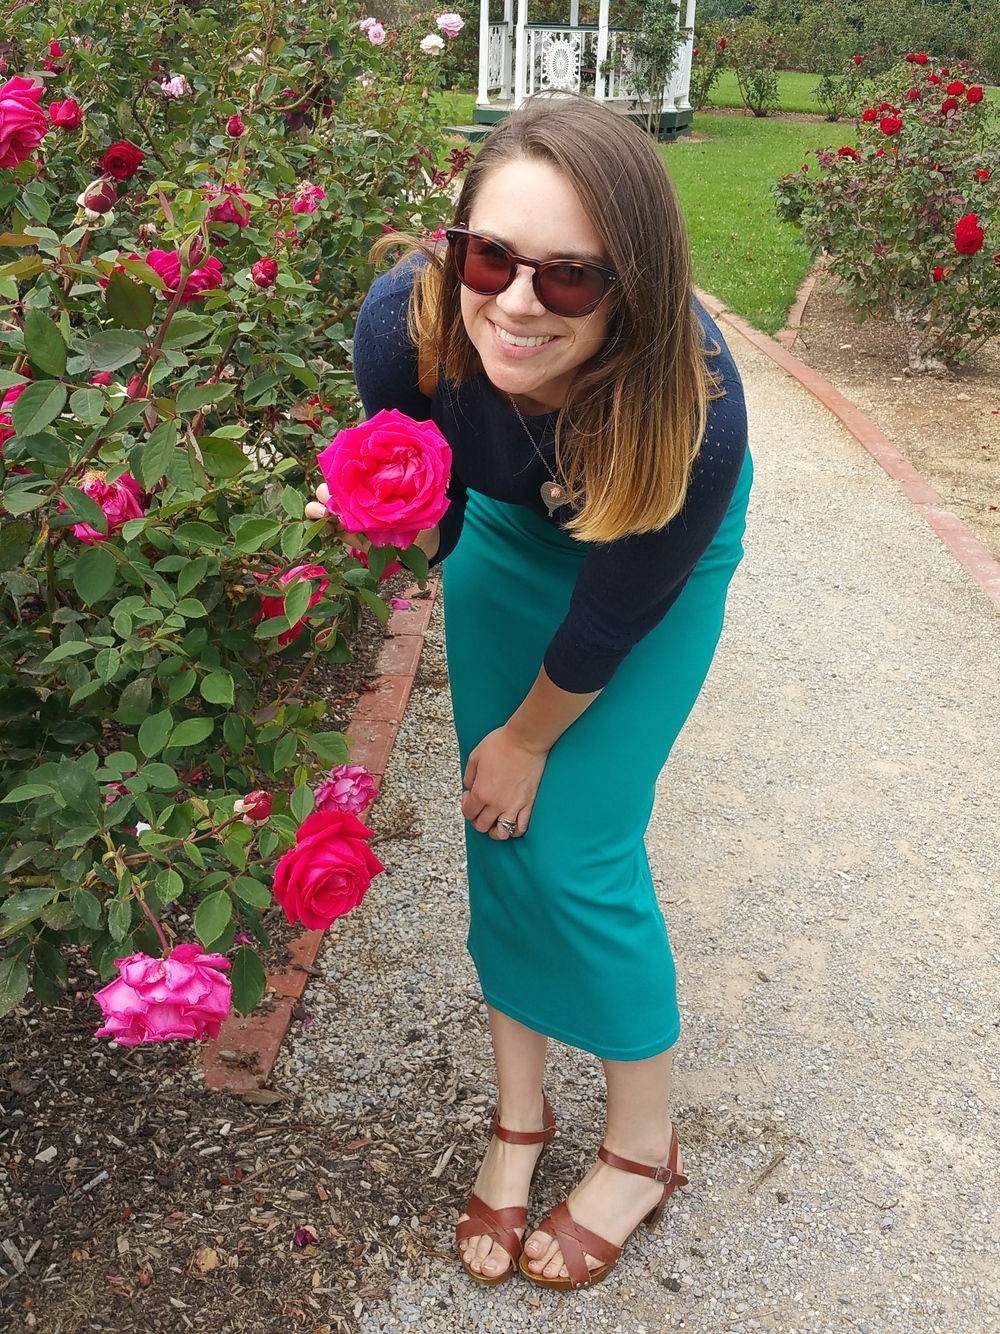 teal-skirt-rose-garden-werribee-asos-clogs